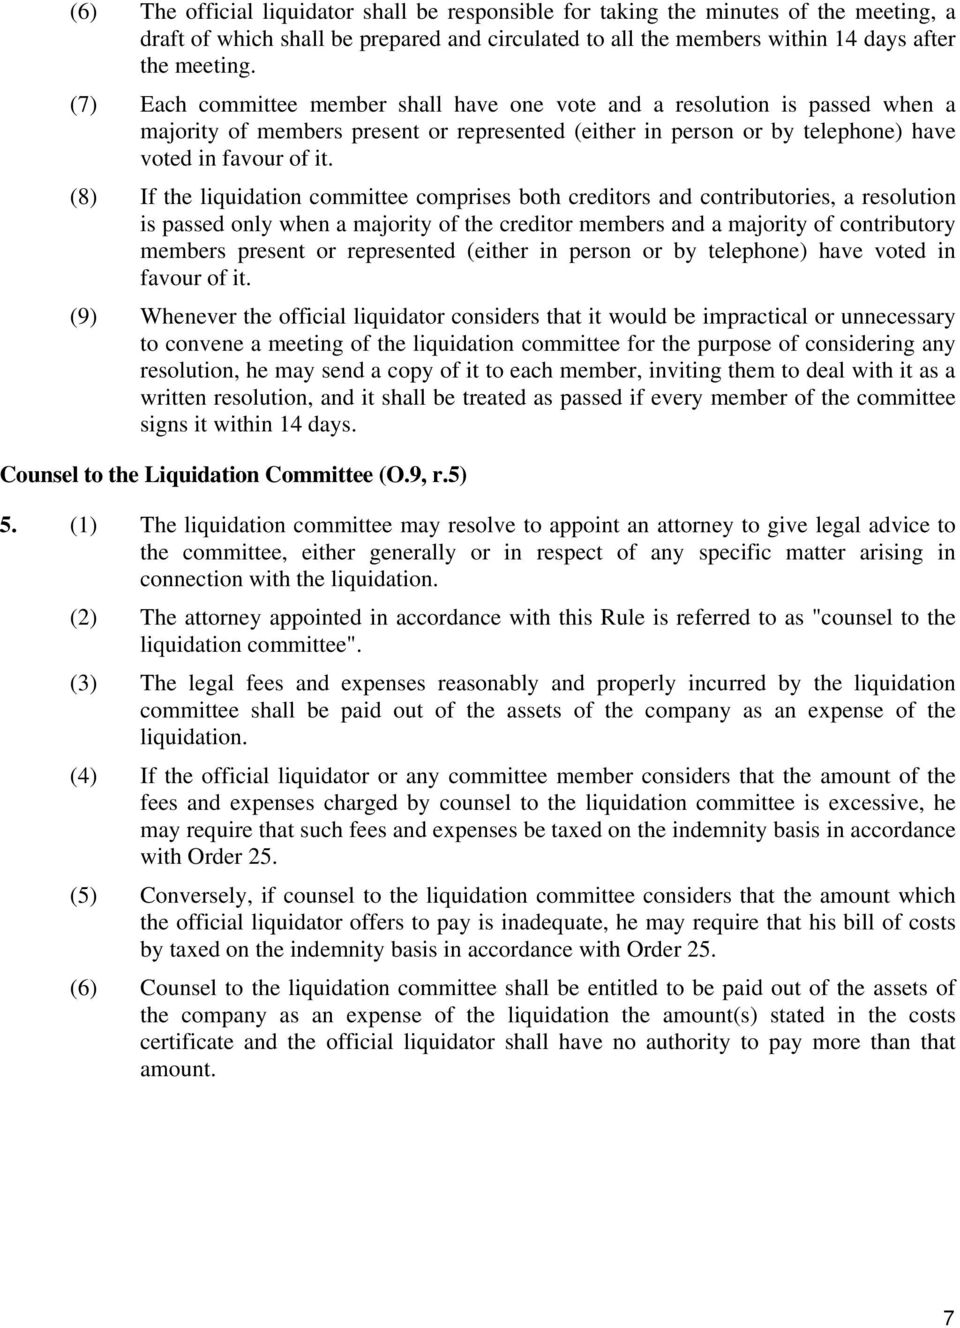 (8) If the liquidation committee comprises both creditors and contributories, a resolution is passed only when a majority of the creditor members and a majority of contributory members present or